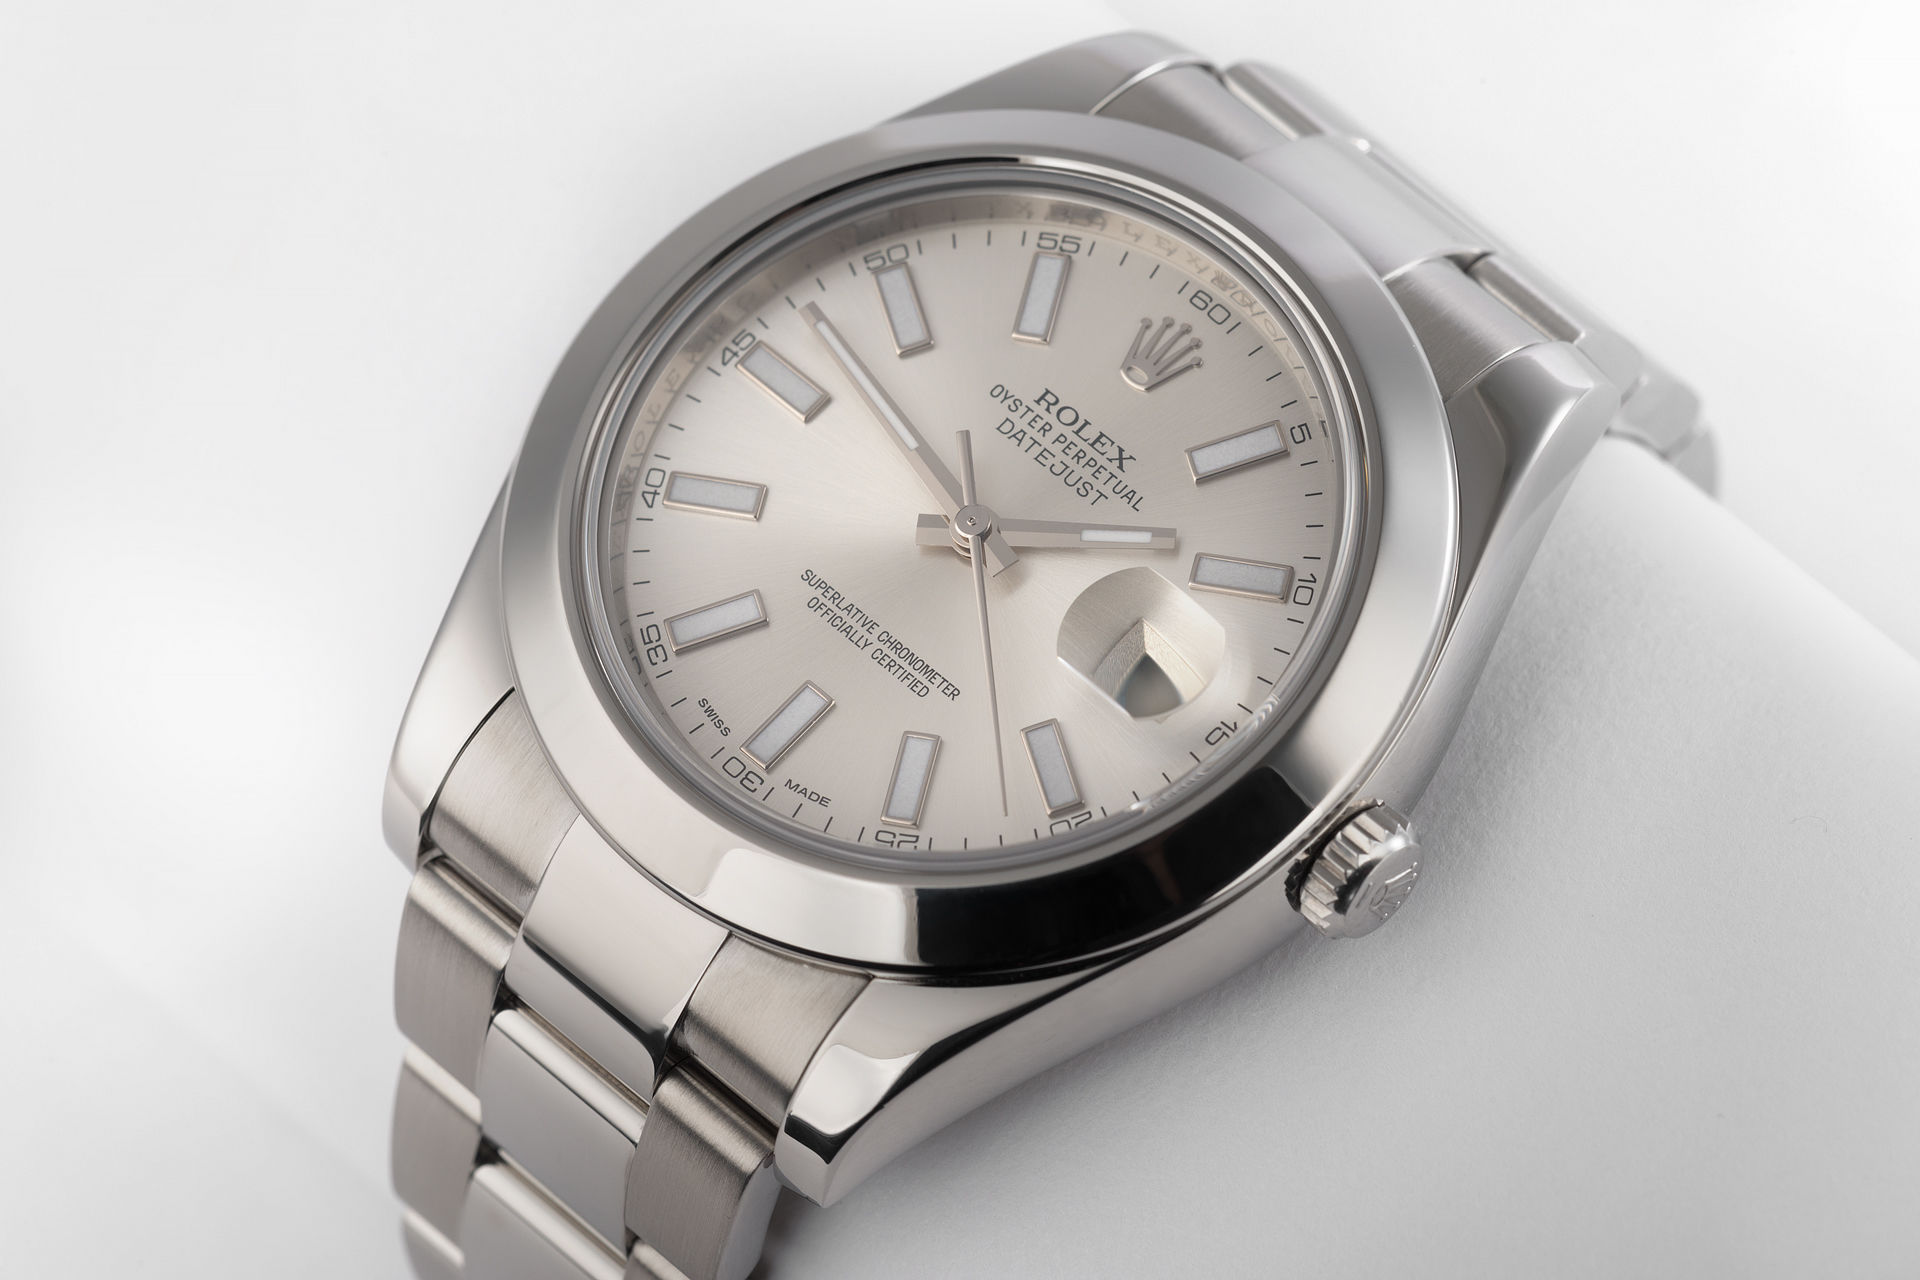 ref 116300 | 41mm 'Box & Papers' | Rolex Datejust II